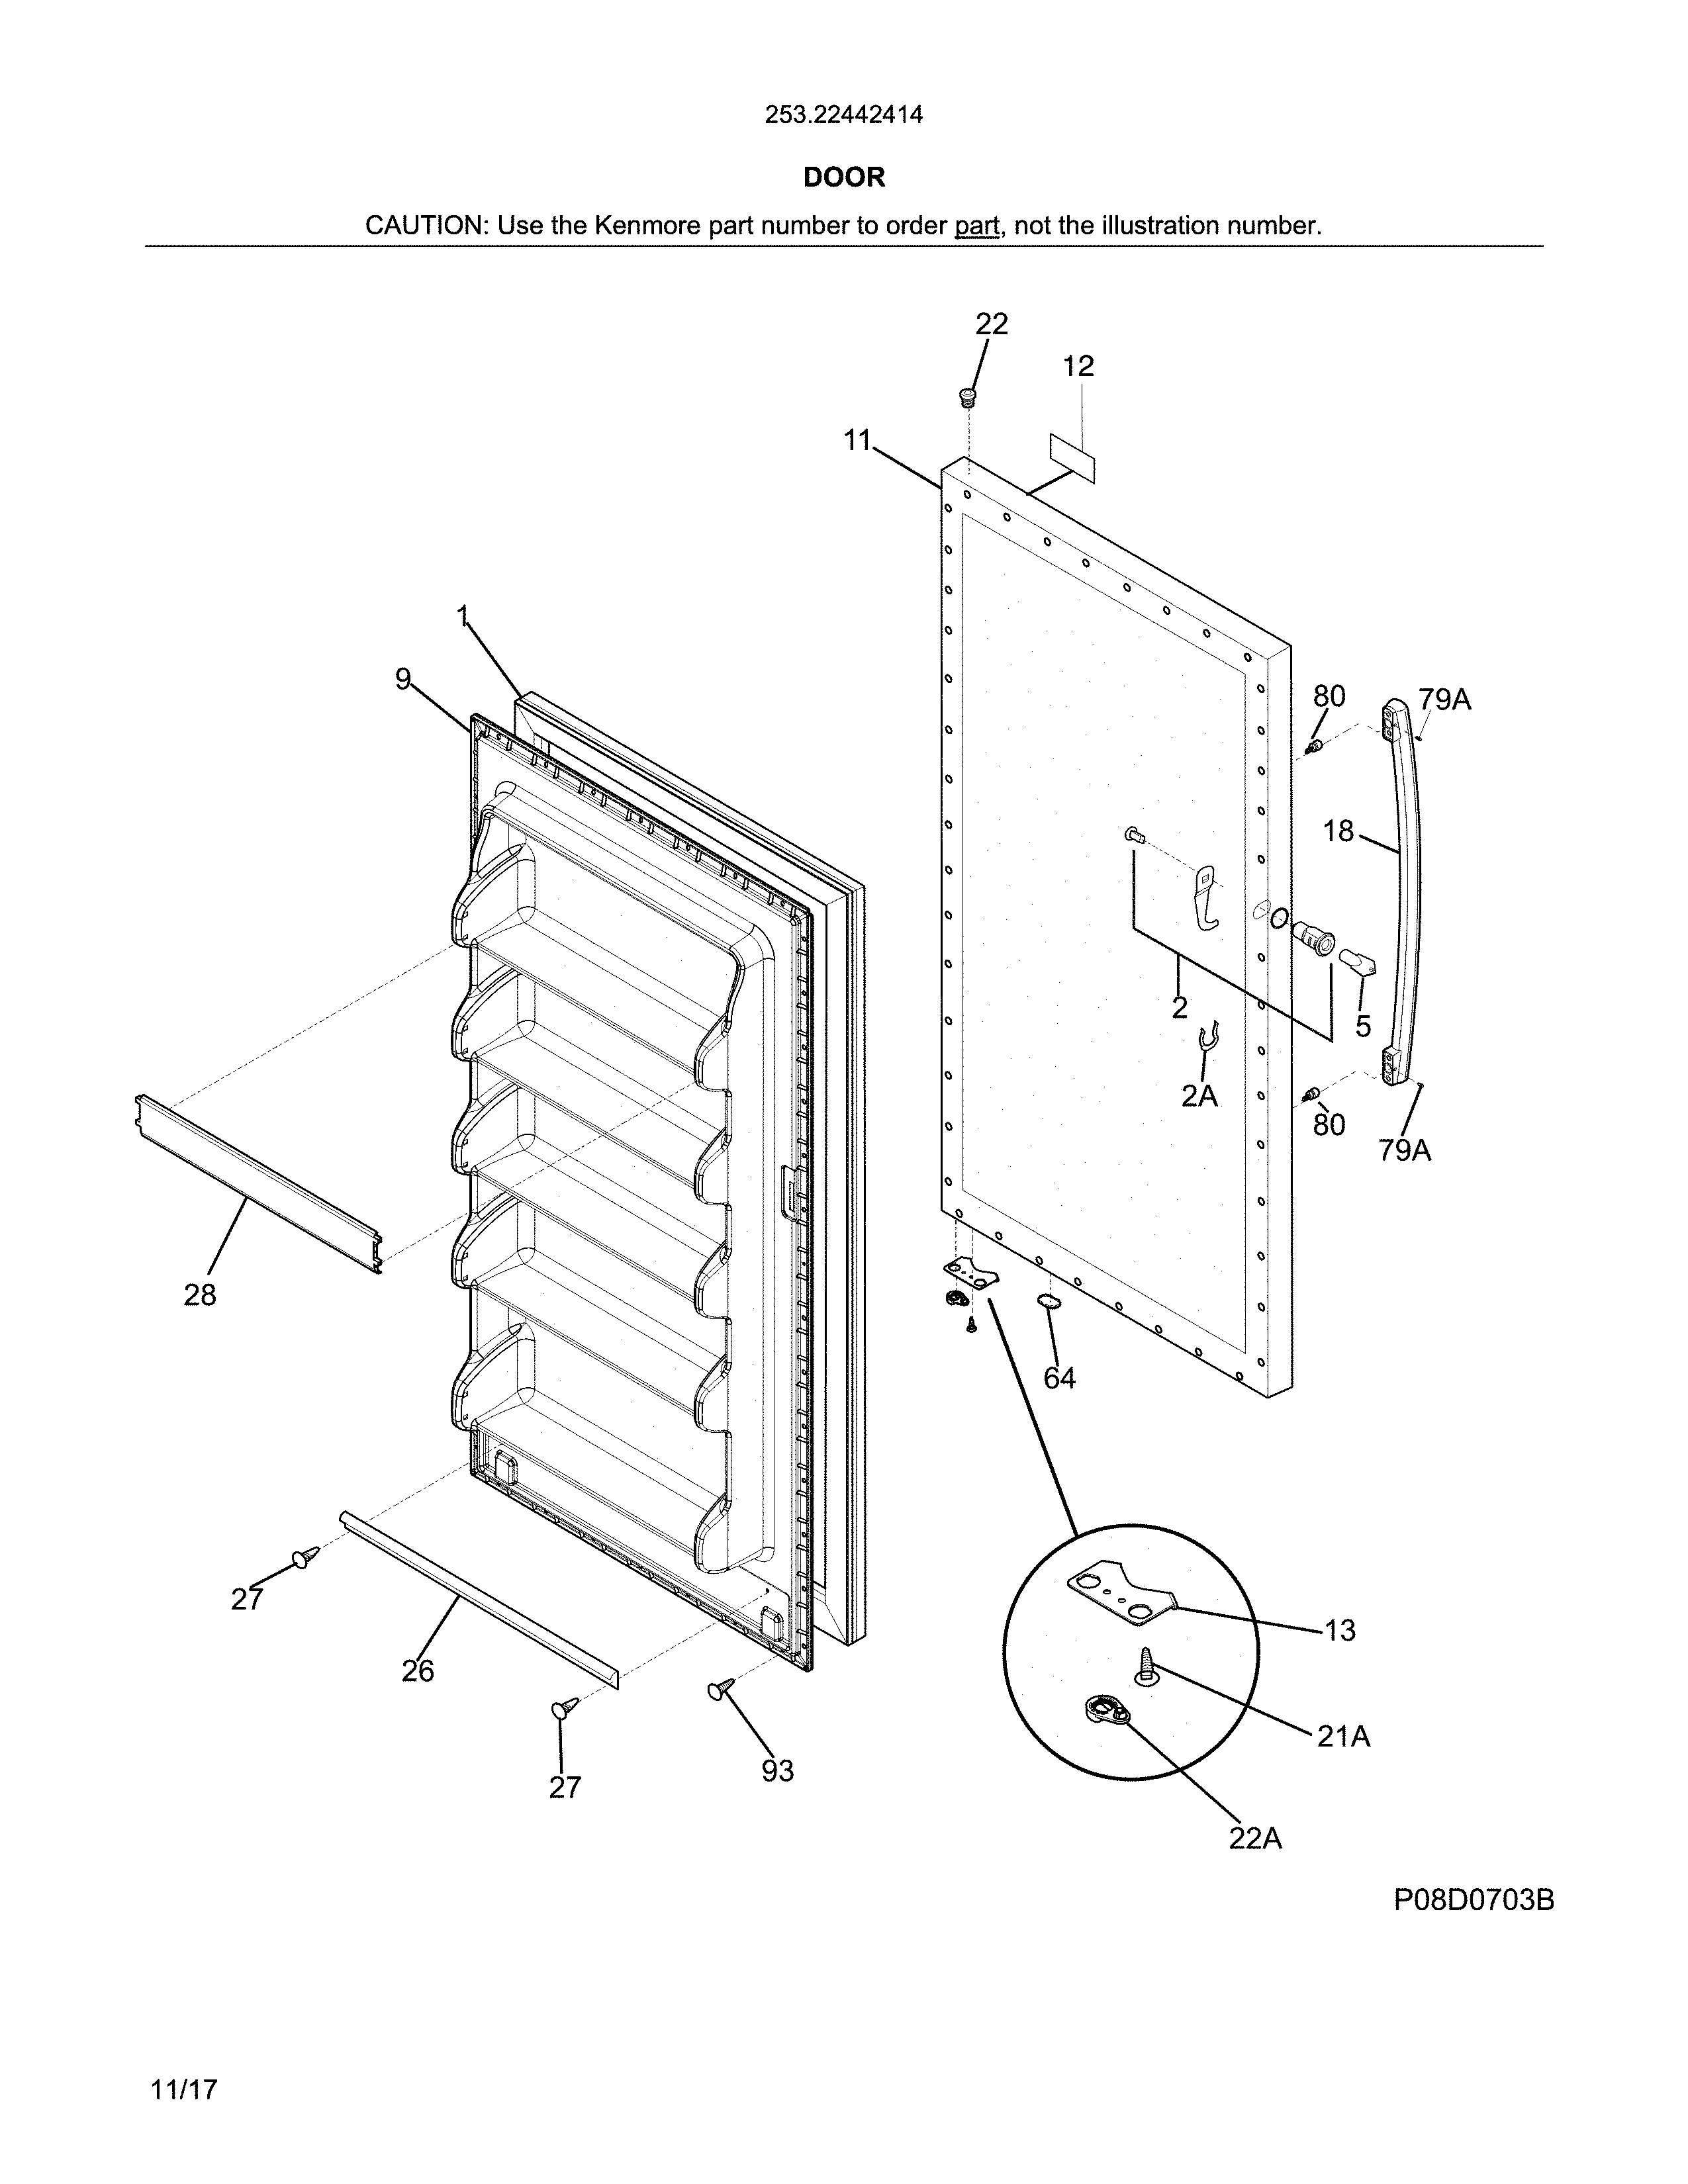 Kenmore 25322442414 door diagram